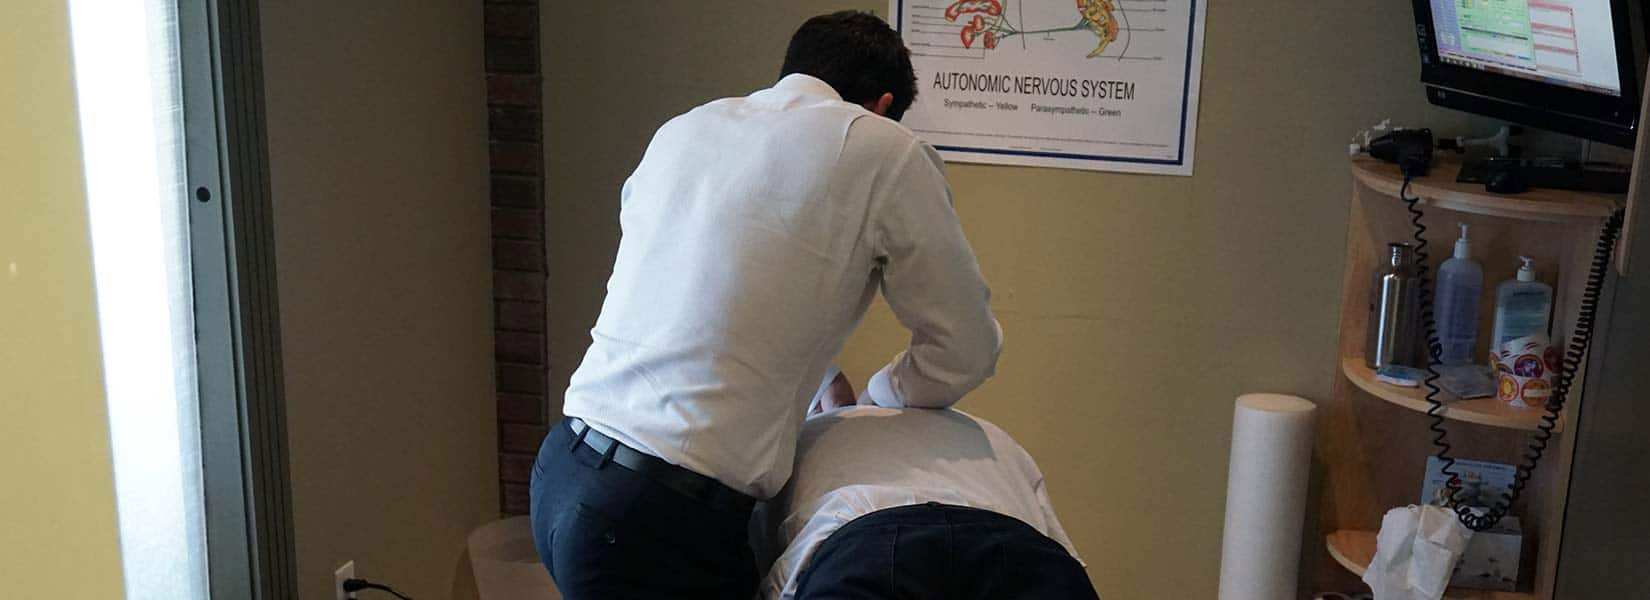 Chiropractic Calgary AB adjustment